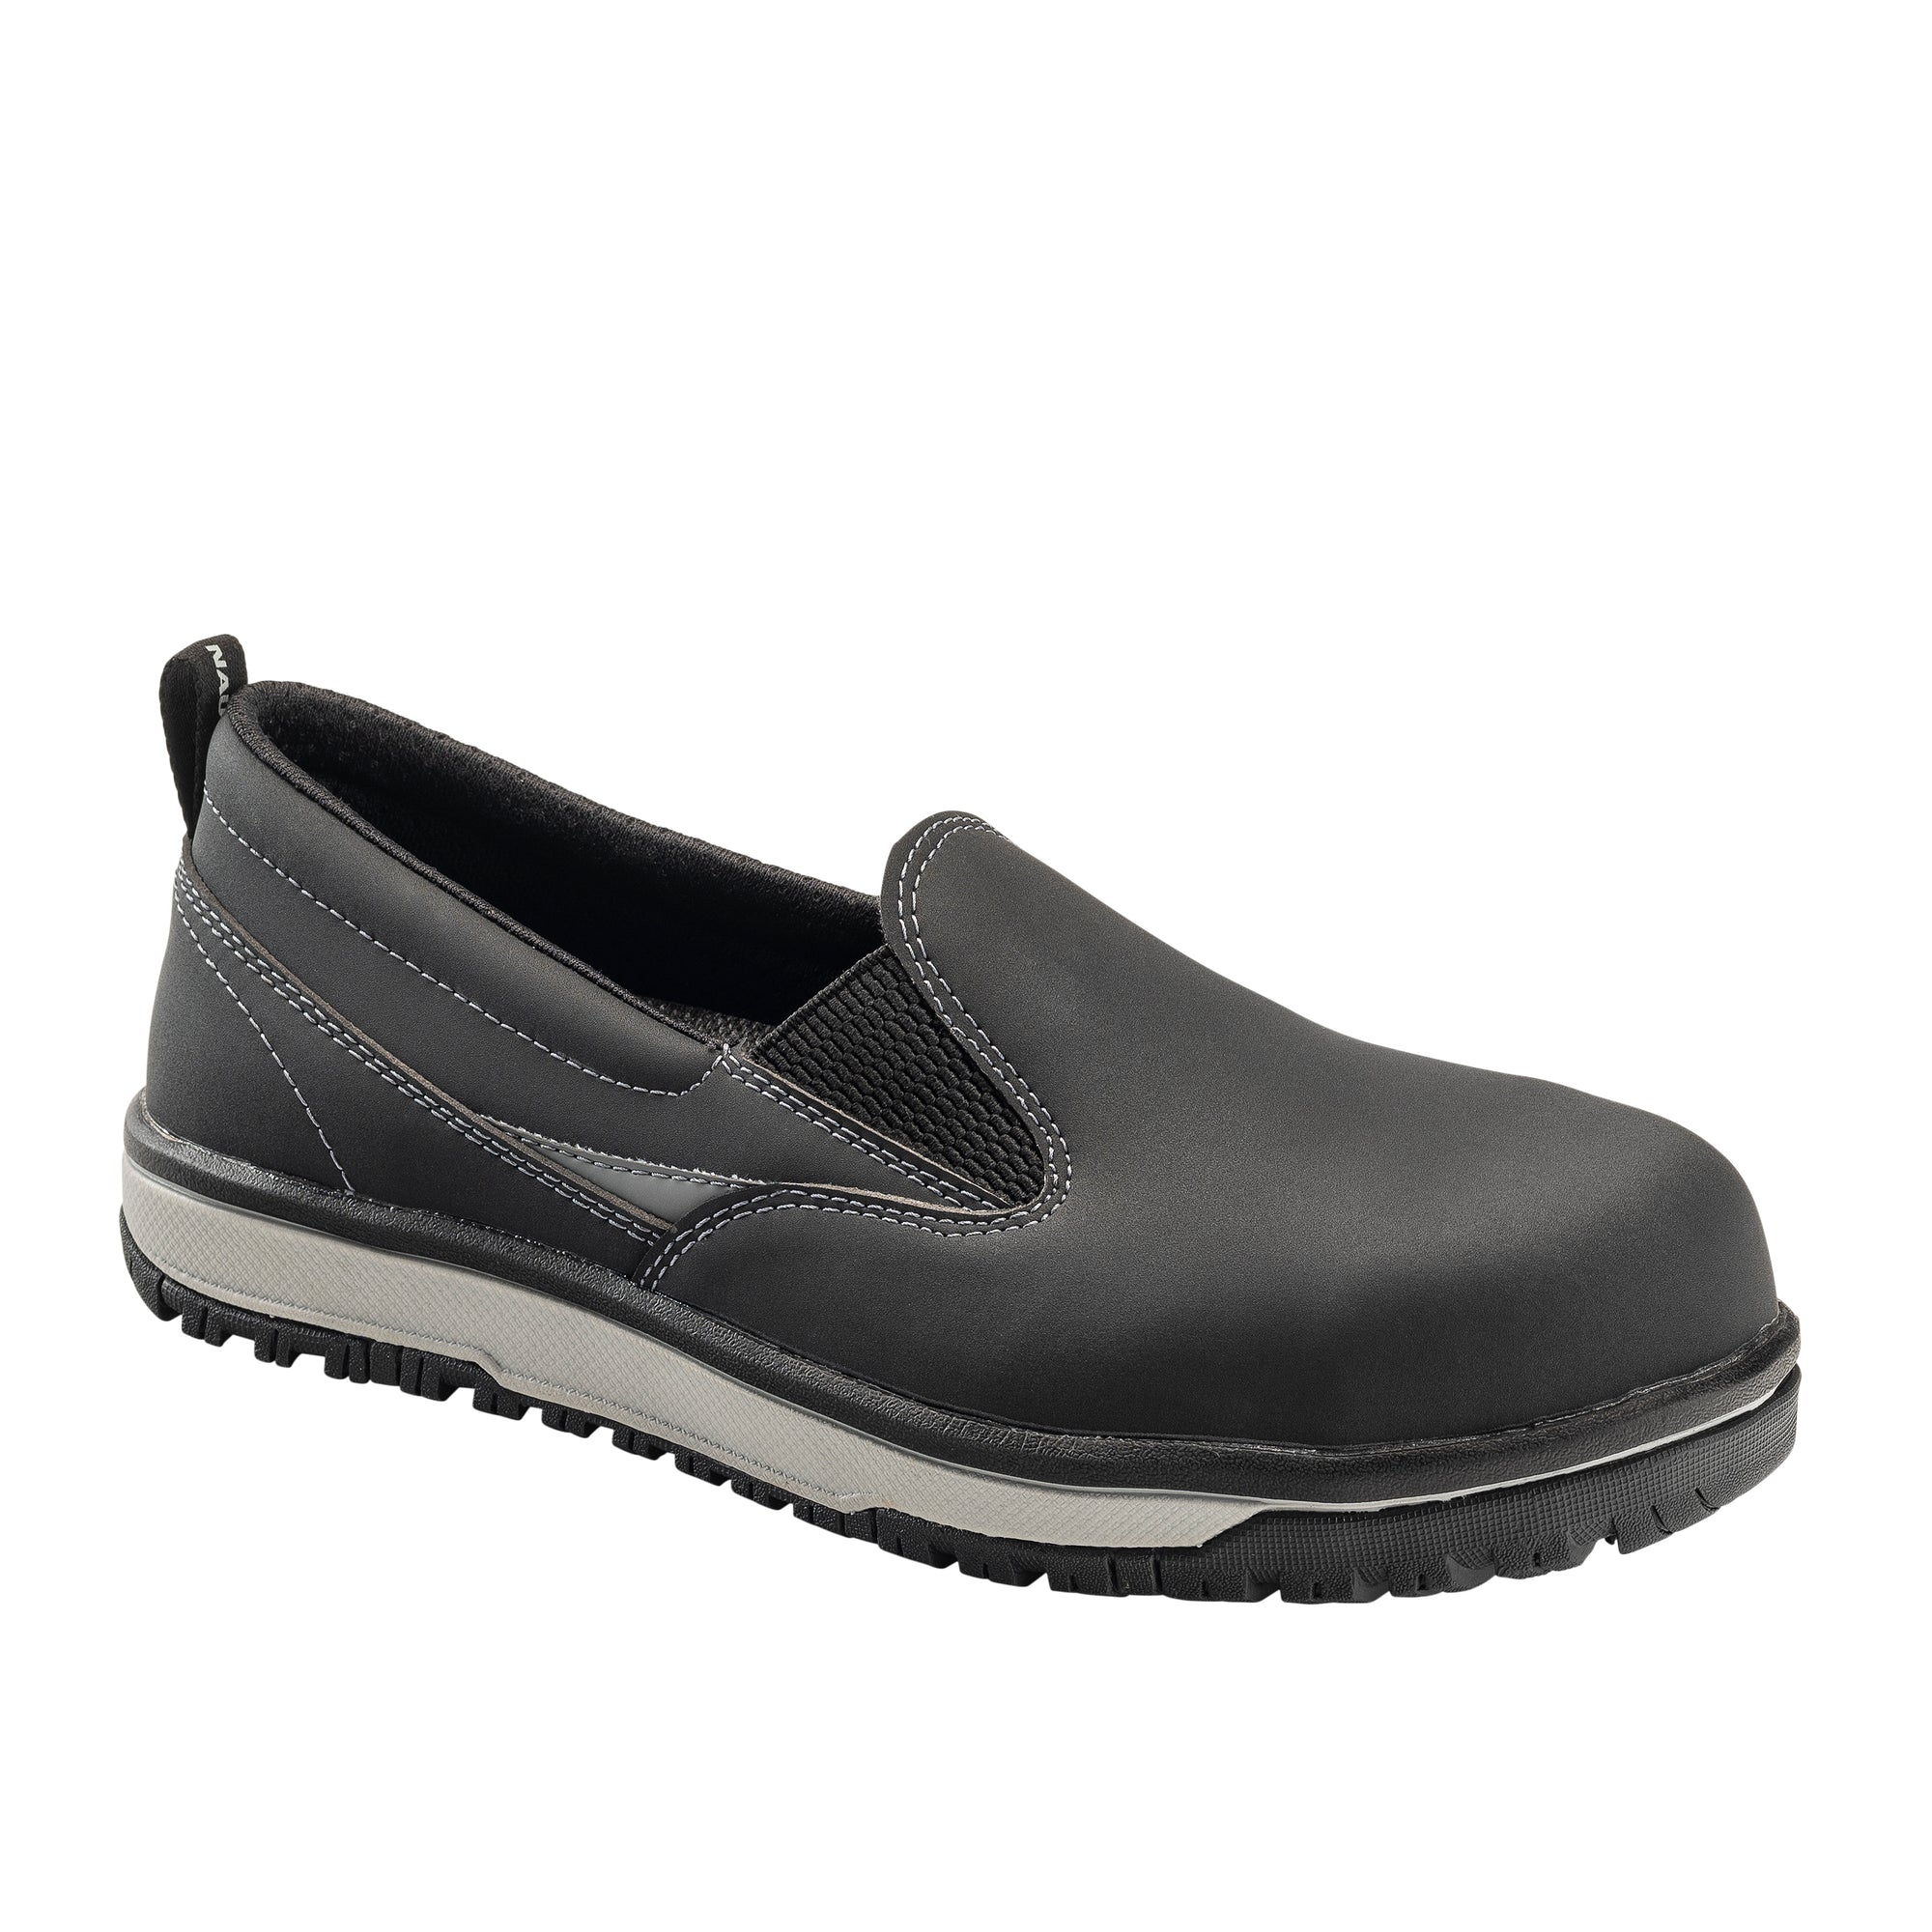 Urban Black Alloy Toe EH Slip On Work Shoe